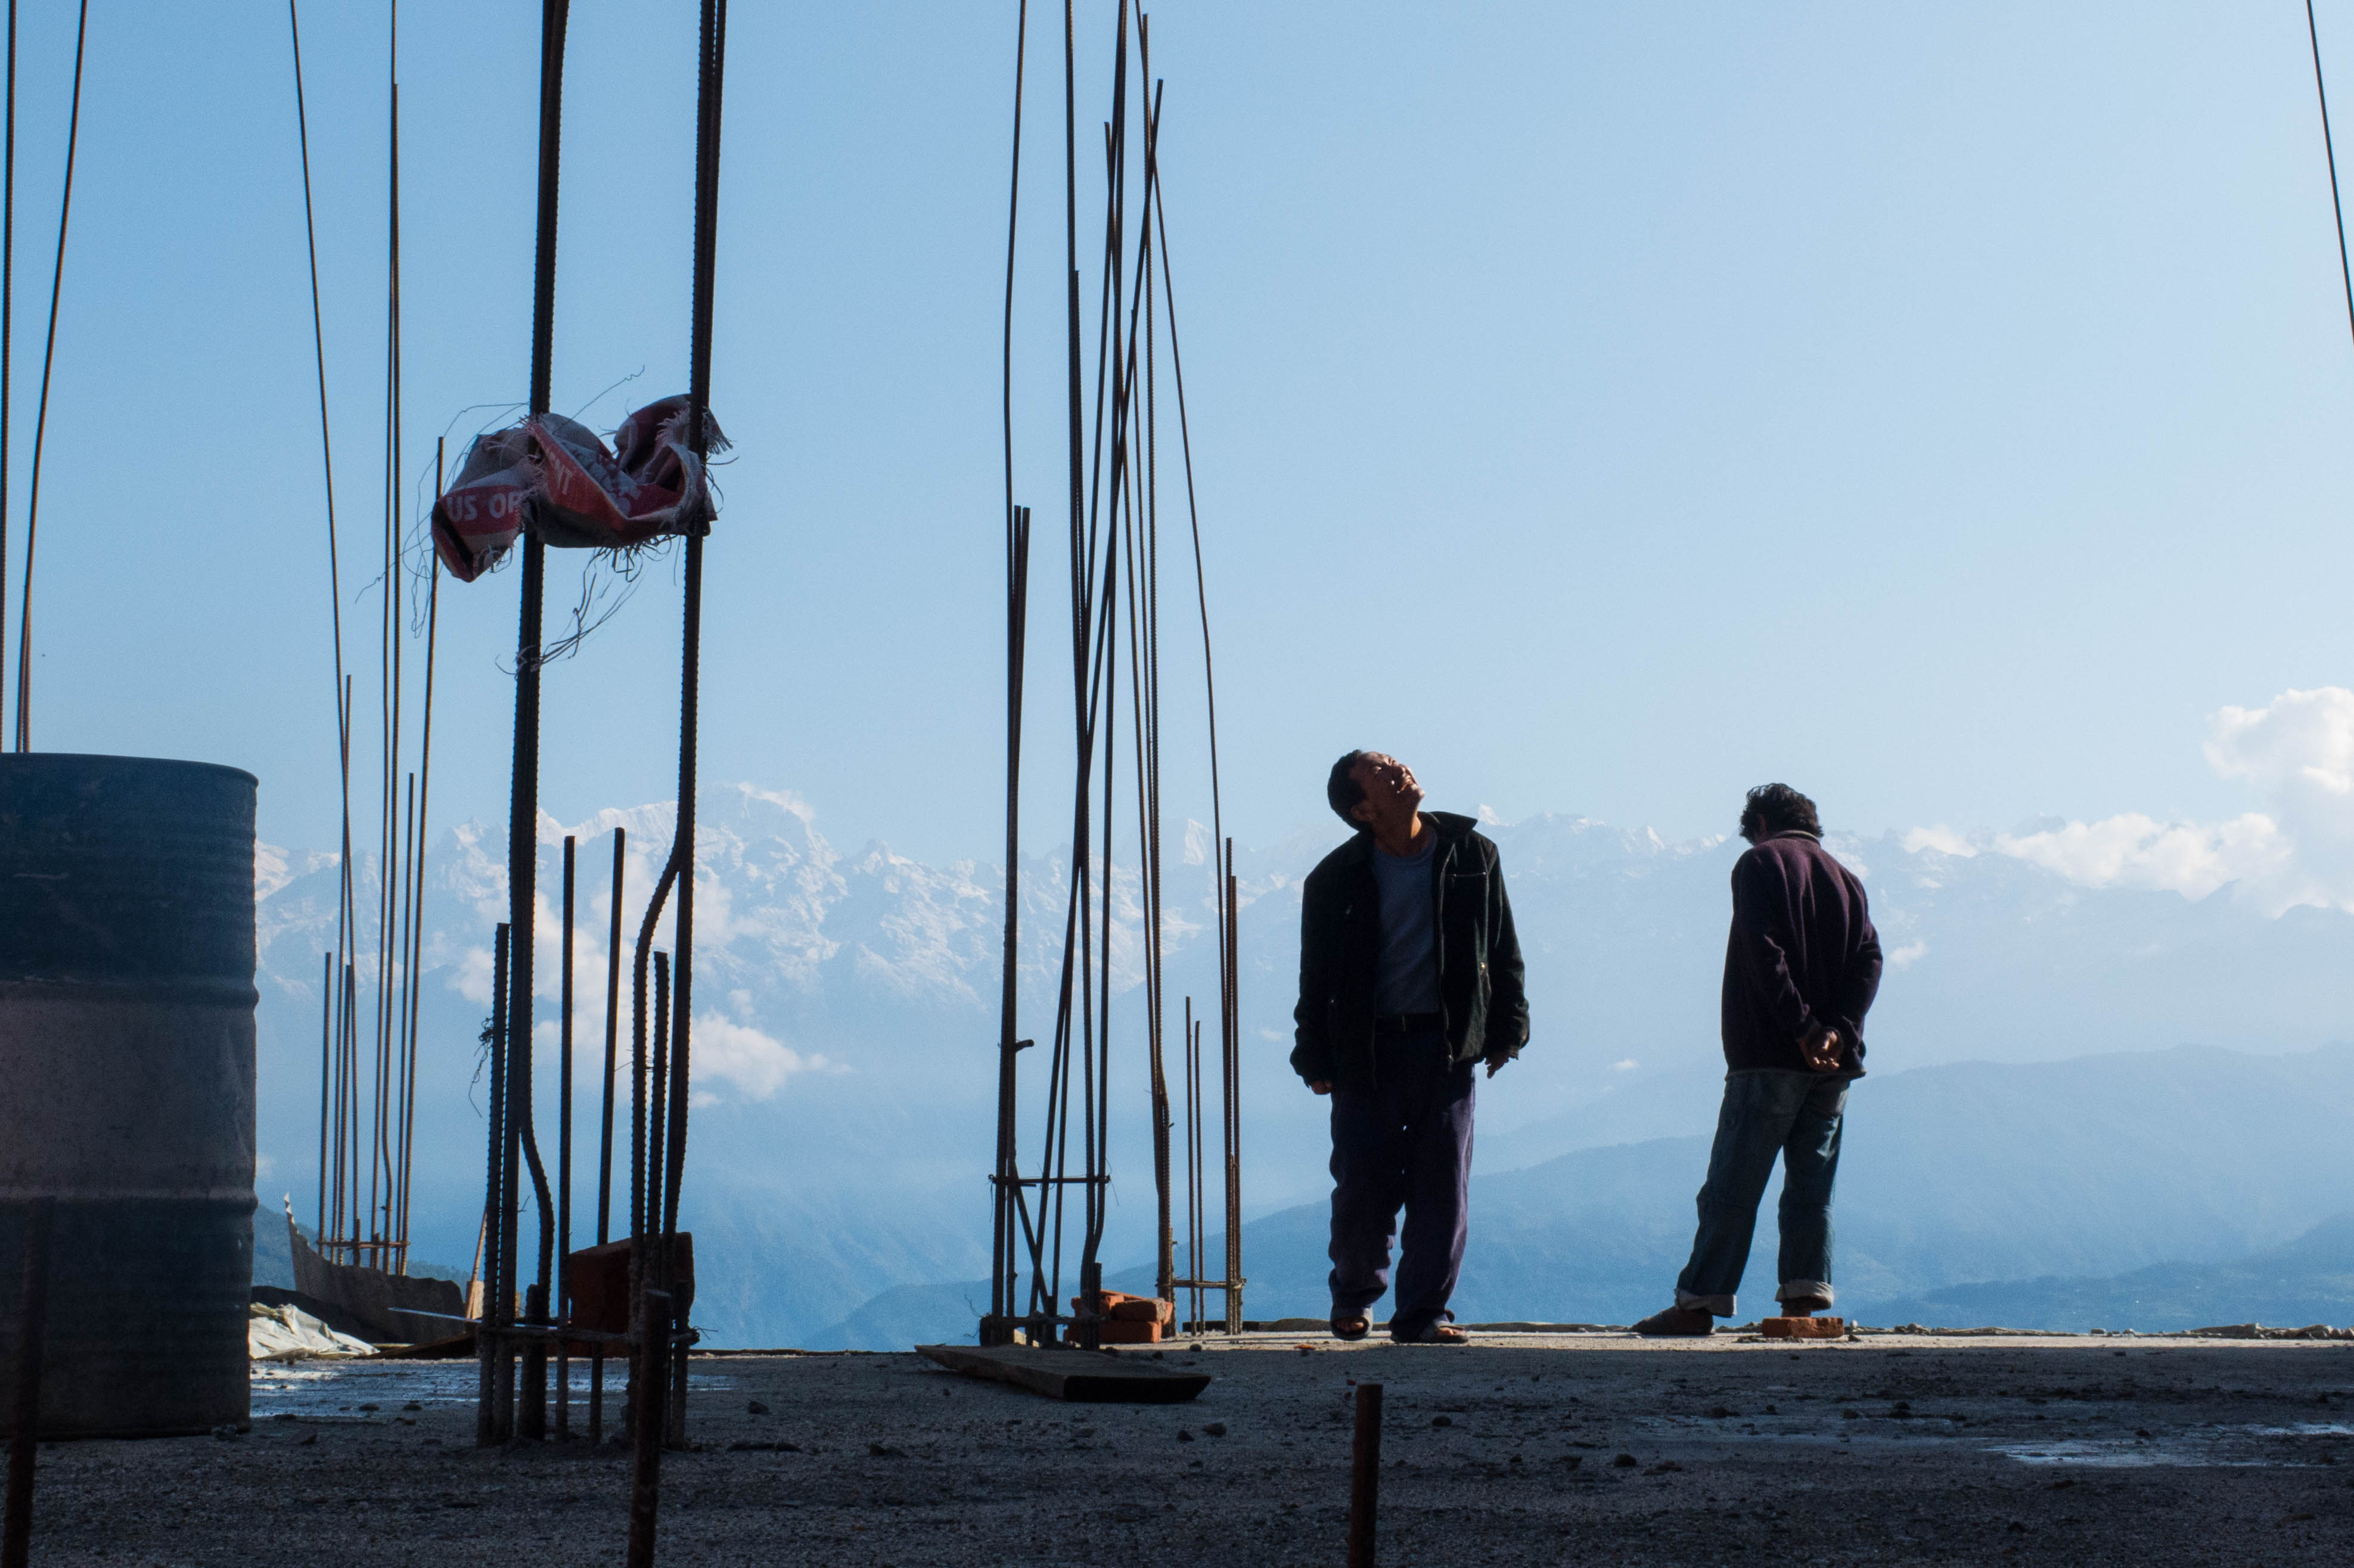 Two men survey construction in October 2015 in Charikot town in Nepal's Dolakha district, which was at the epicentre of the earthquake on 25 April 2015